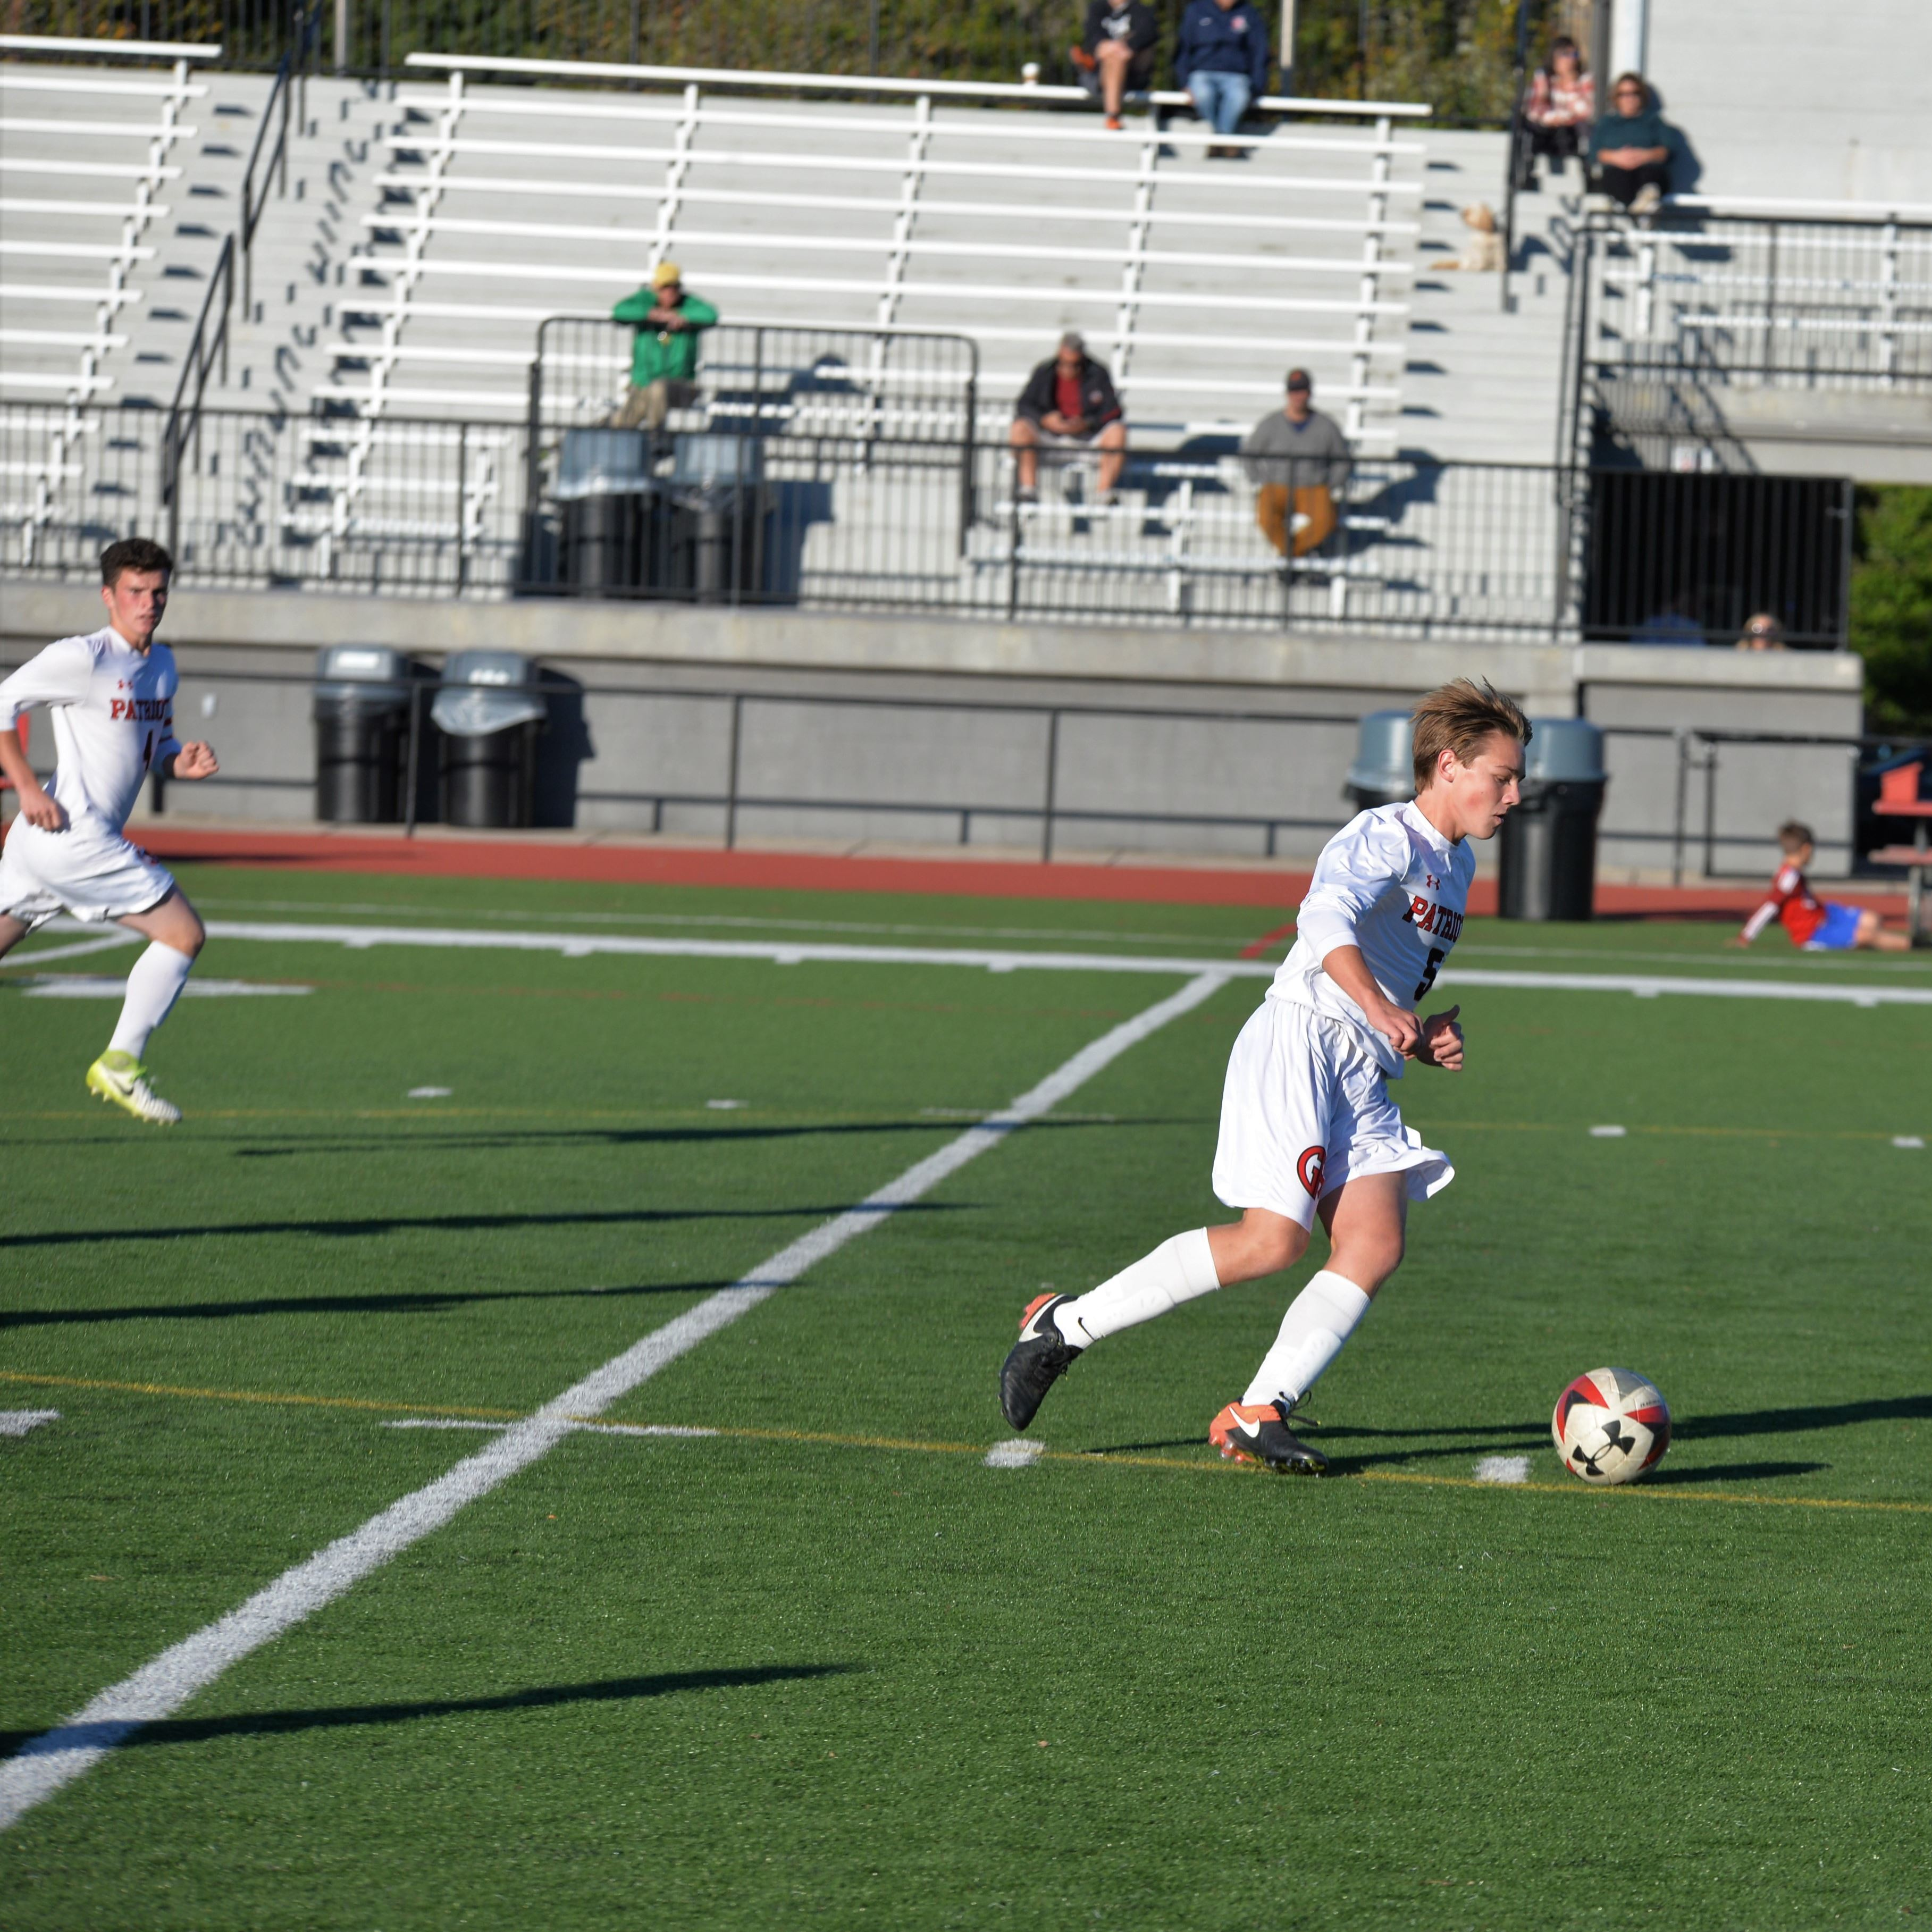 Boys Soccer: Patriots Face Kiski School On the Road in PAISAA Tournament